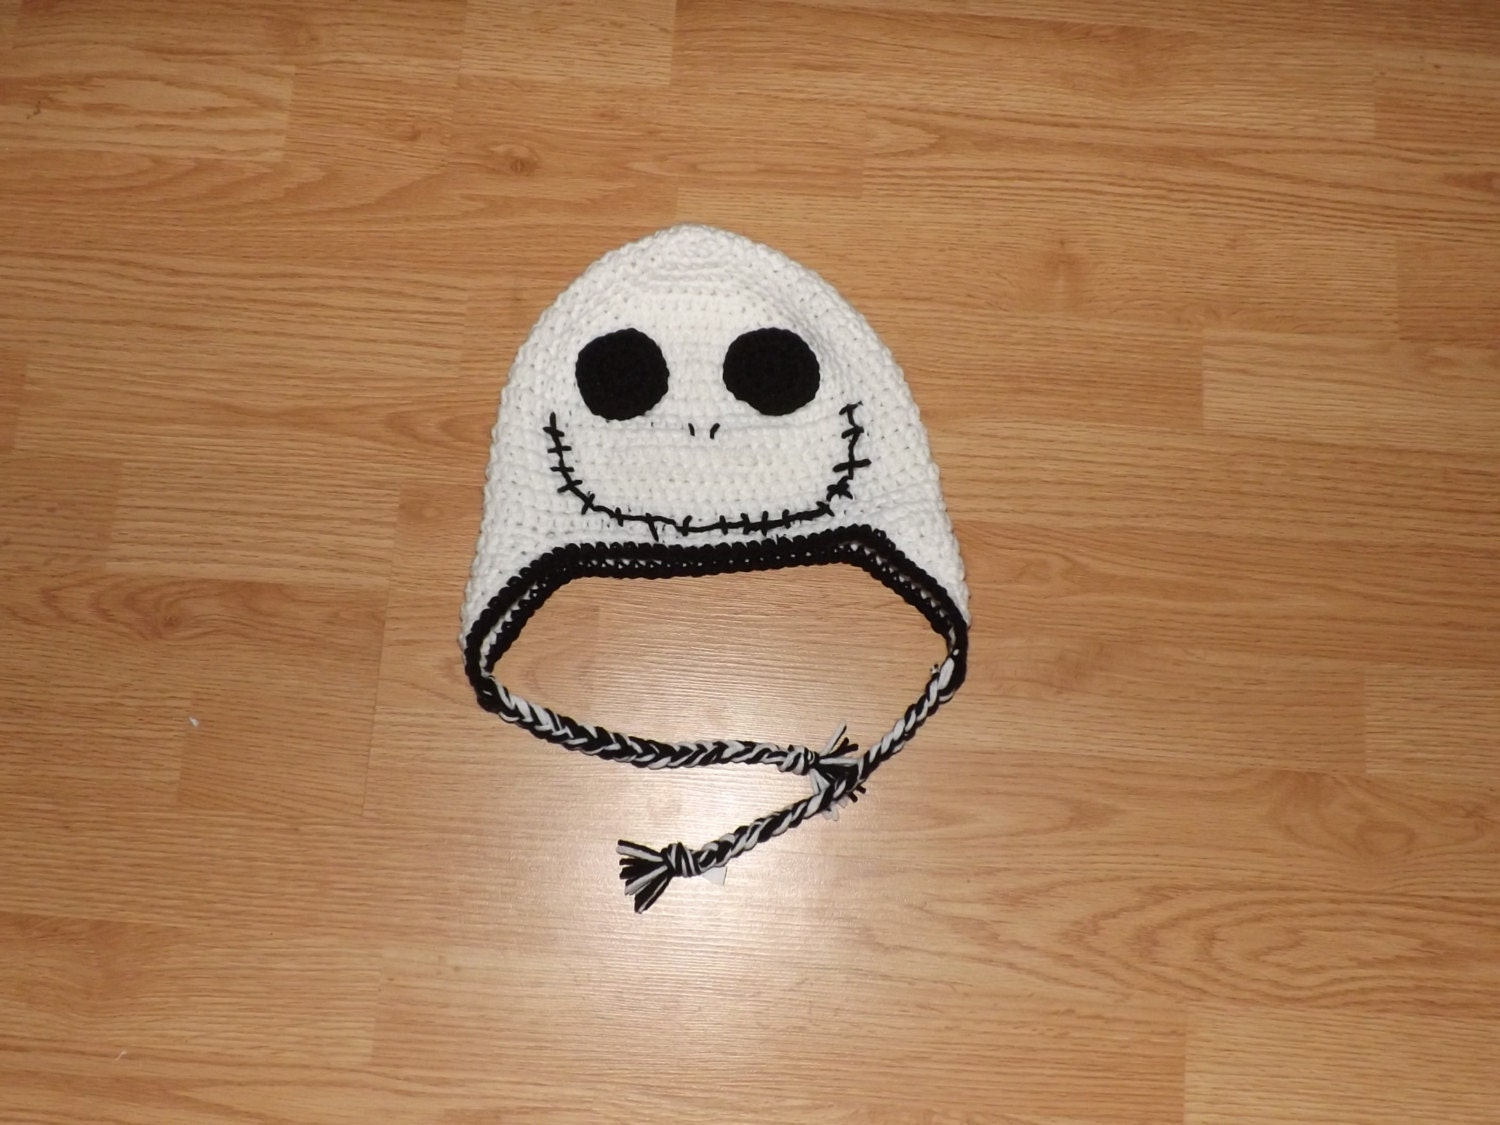 Crochet Pattern For Jack Skellington Hat : Jack Skellington Crochet Hat by TheAnxiousHooker on Etsy